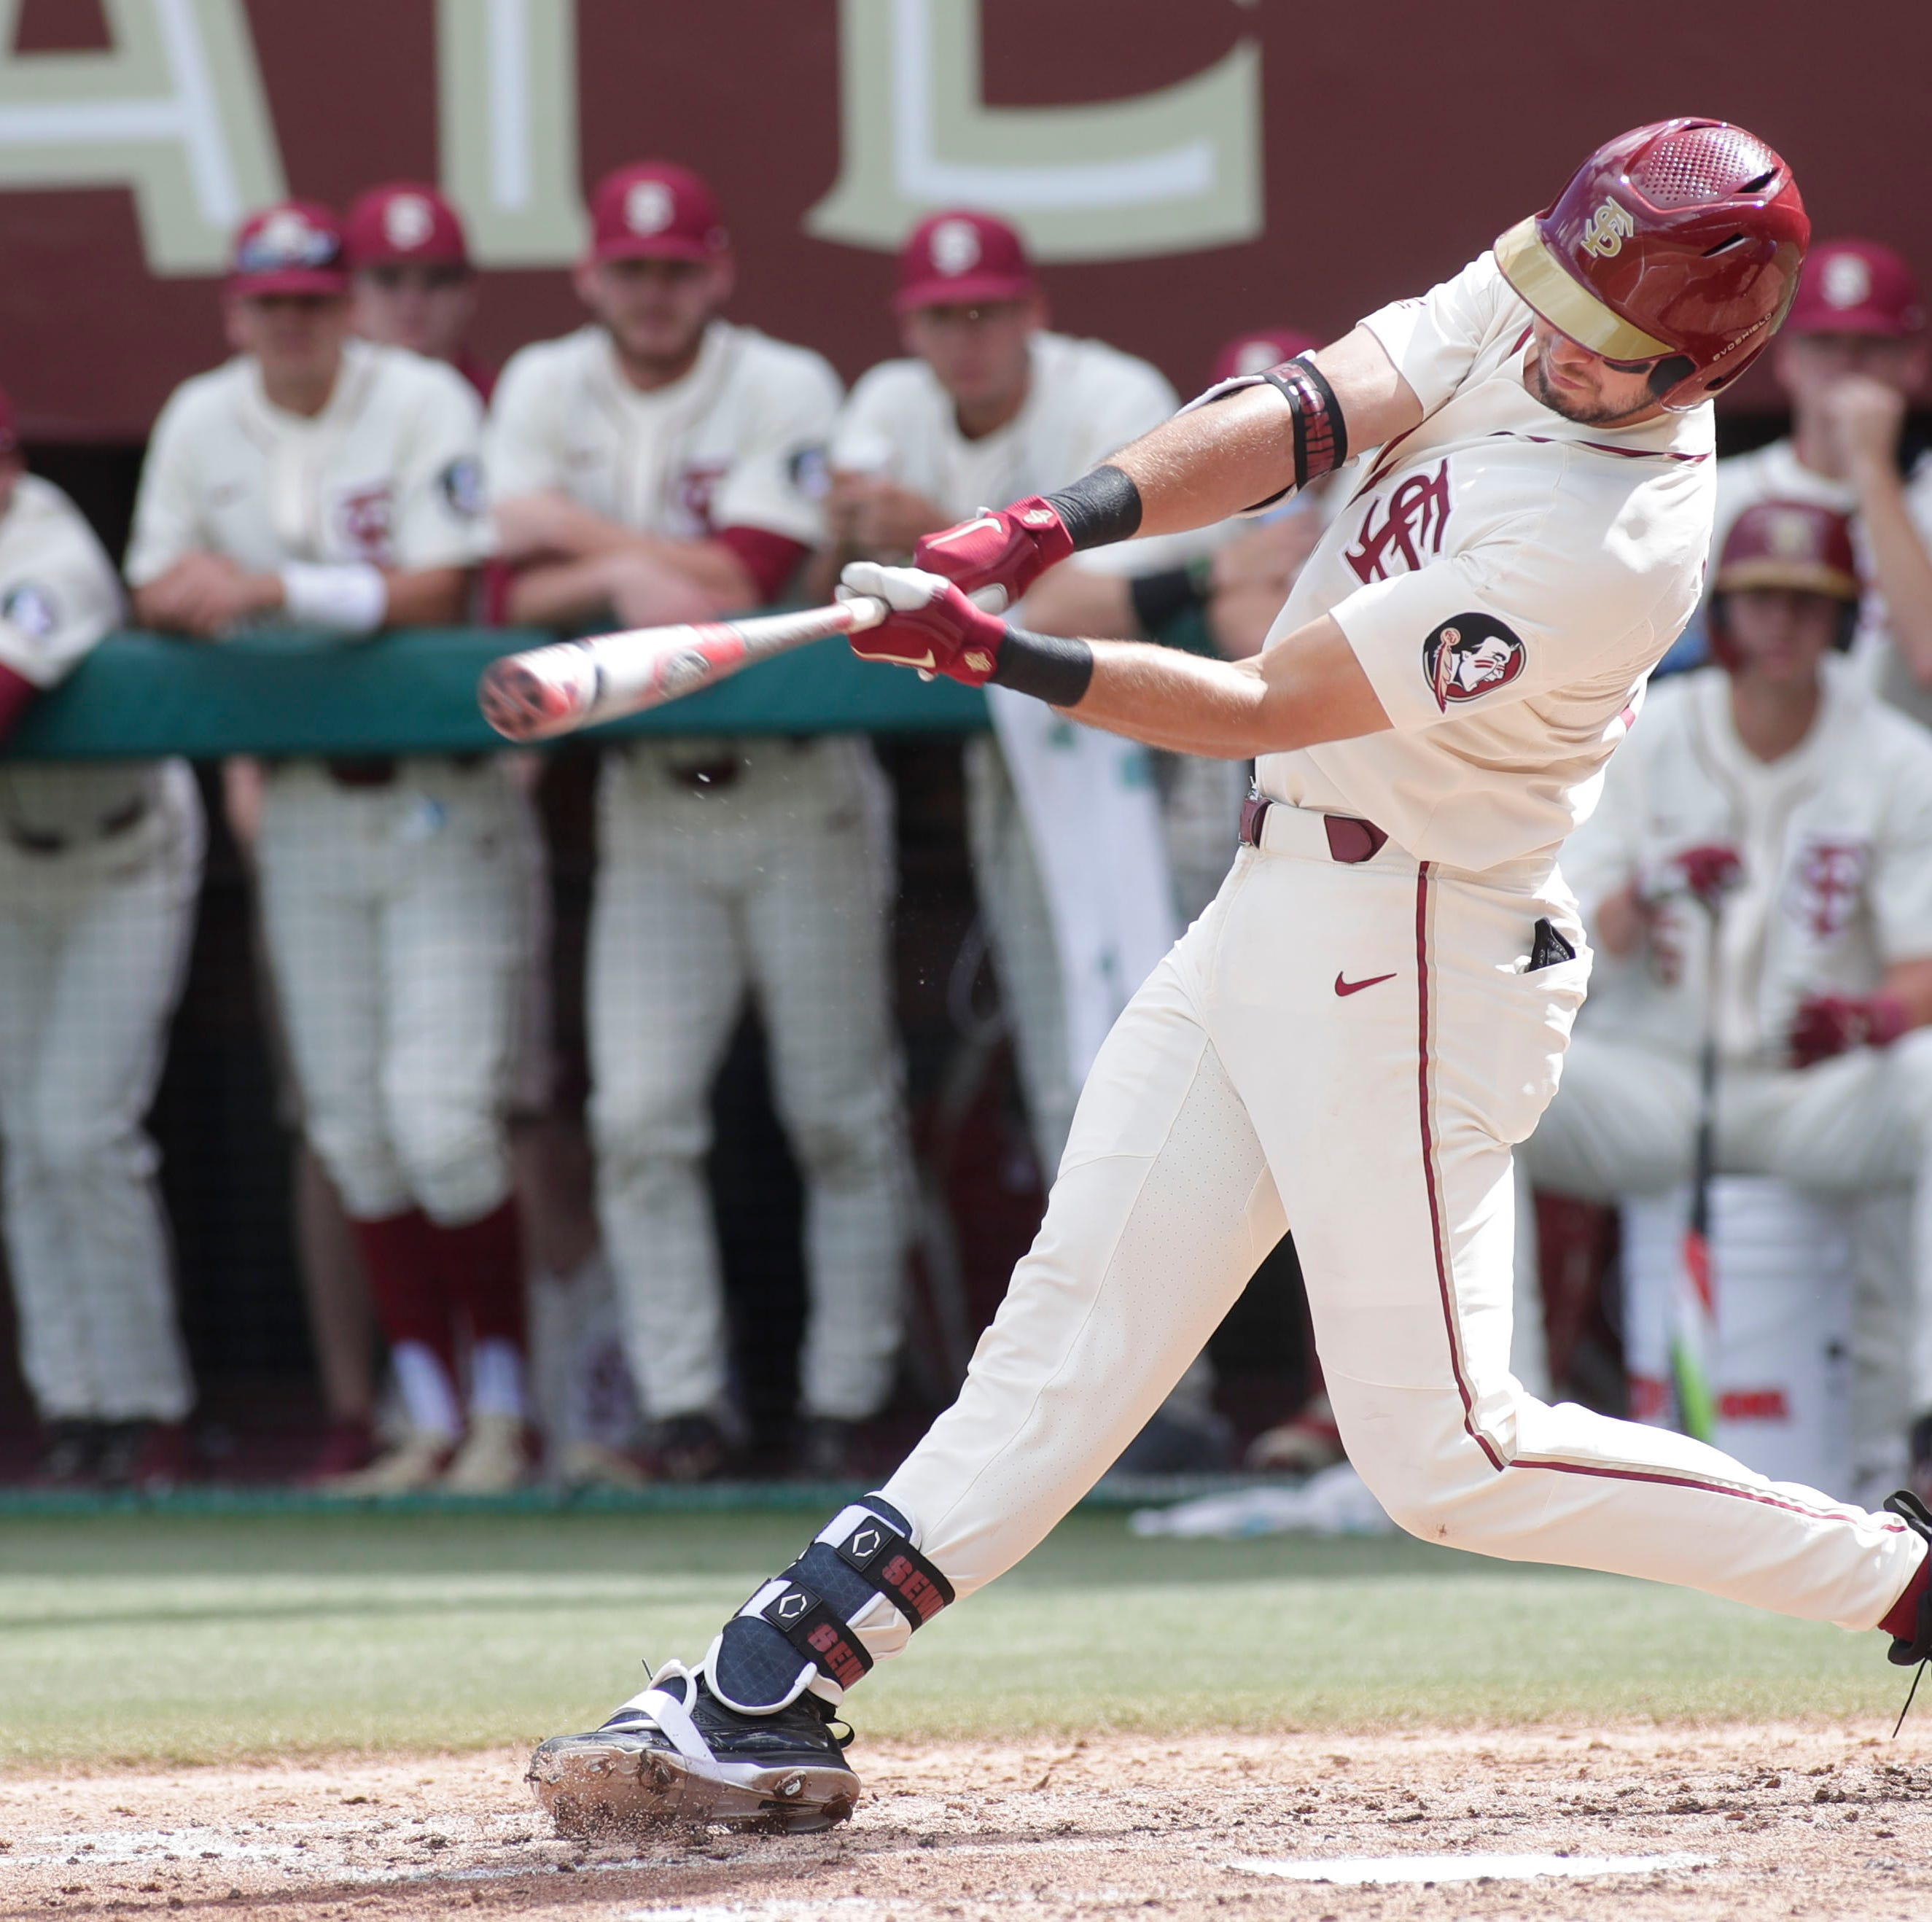 Florida State baseball postseason update: May 14